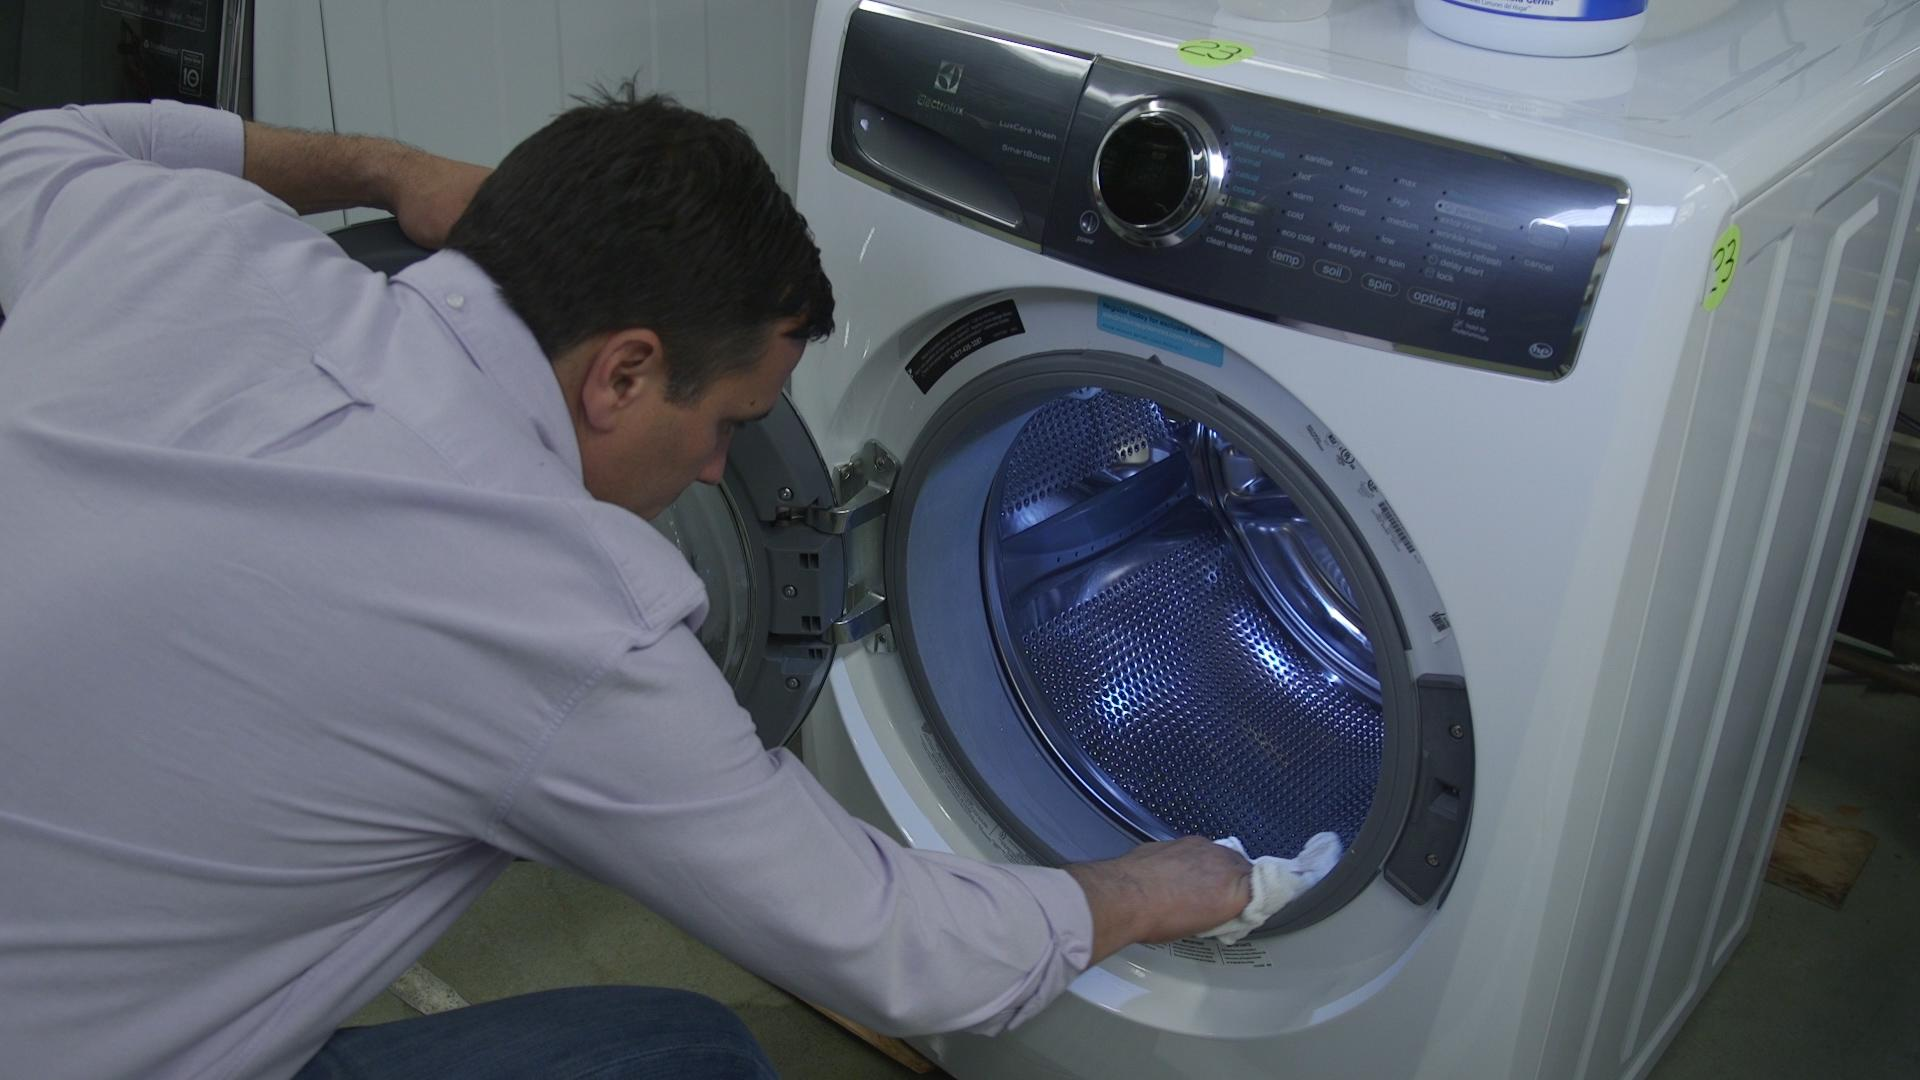 Washing Machine Inside ~ How to clean your washing machine consumer reports